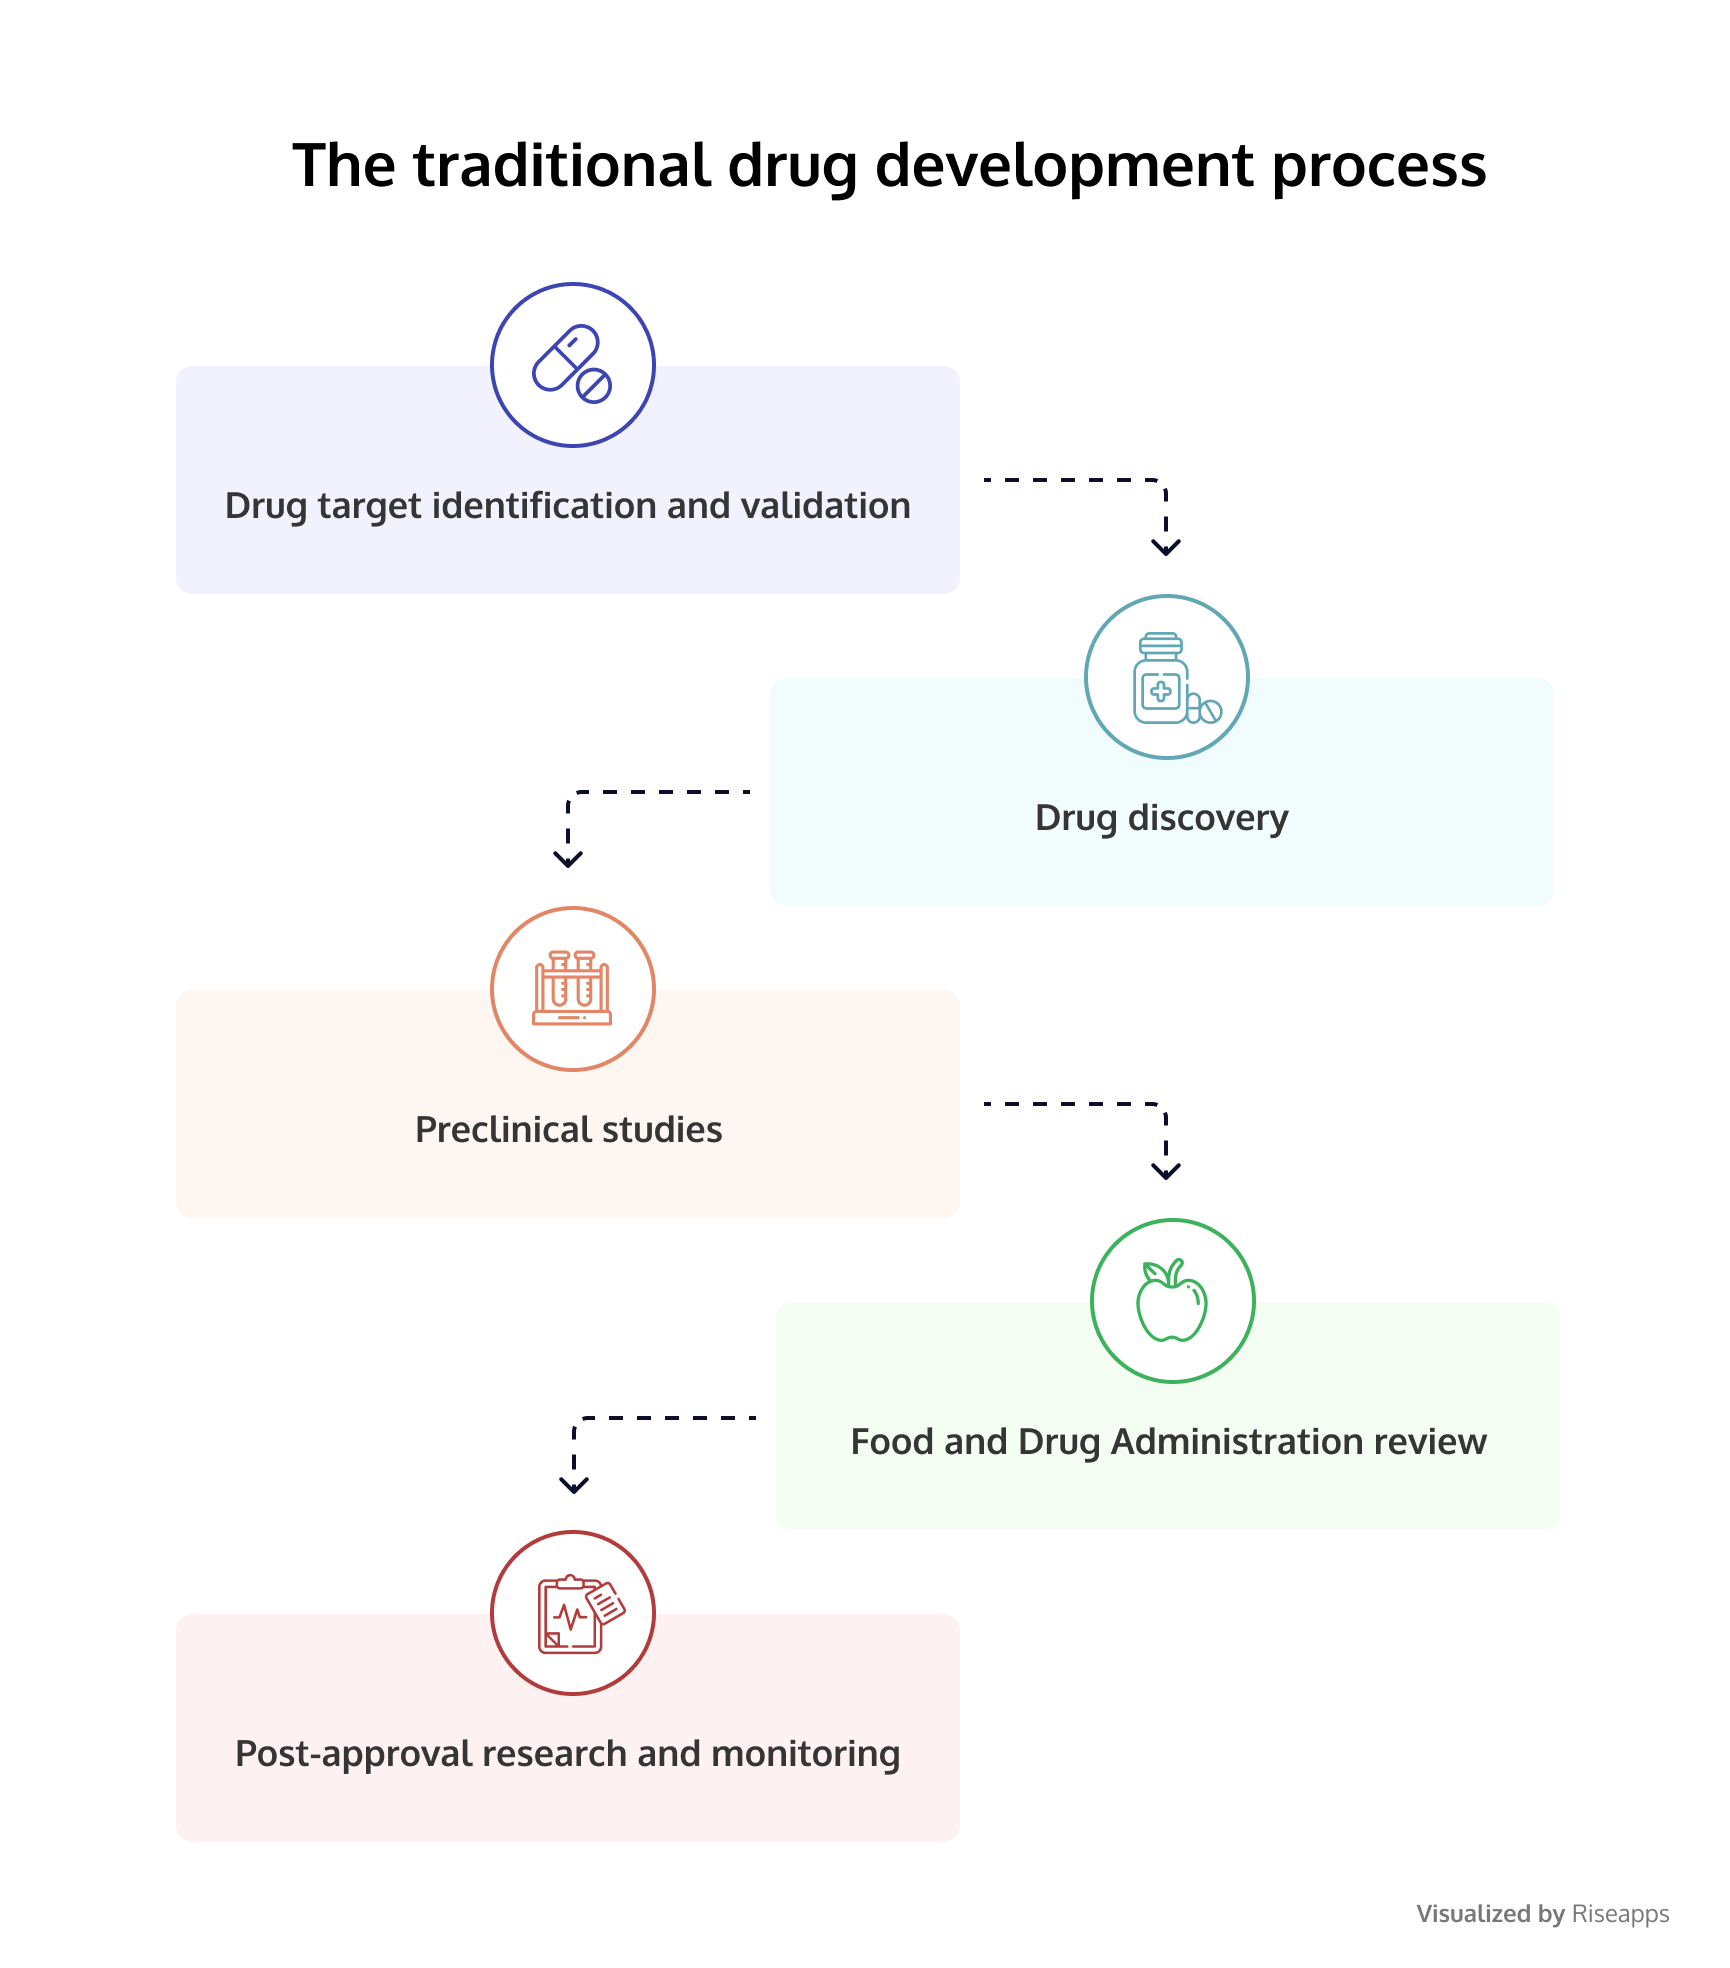 The traditional drug development process